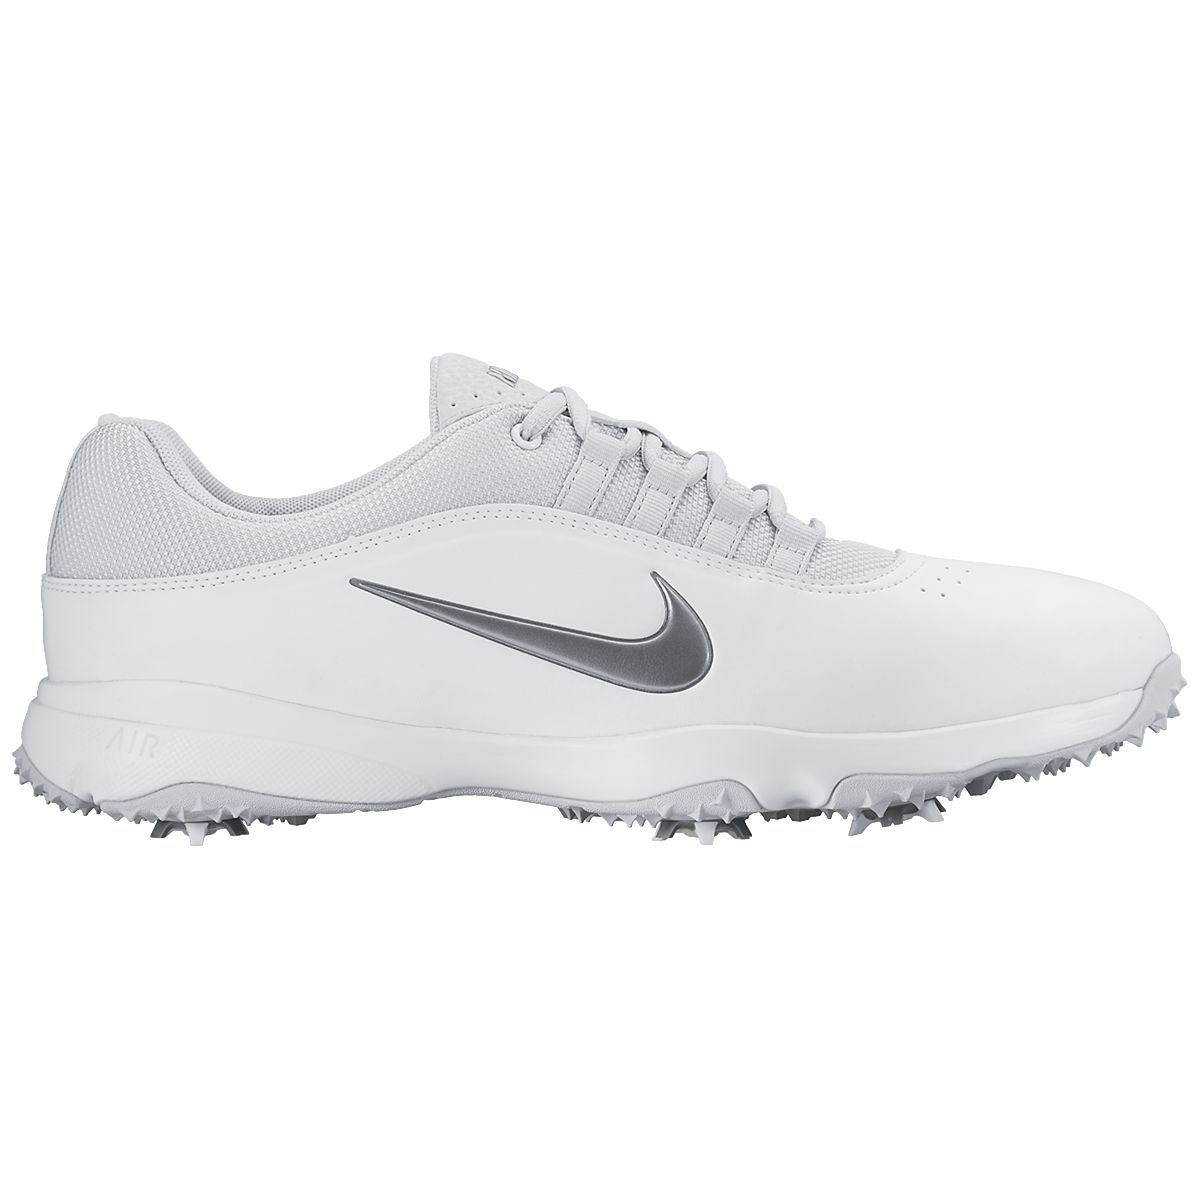 Nike Air Rival 4 White Golf Shoes - Wide Width